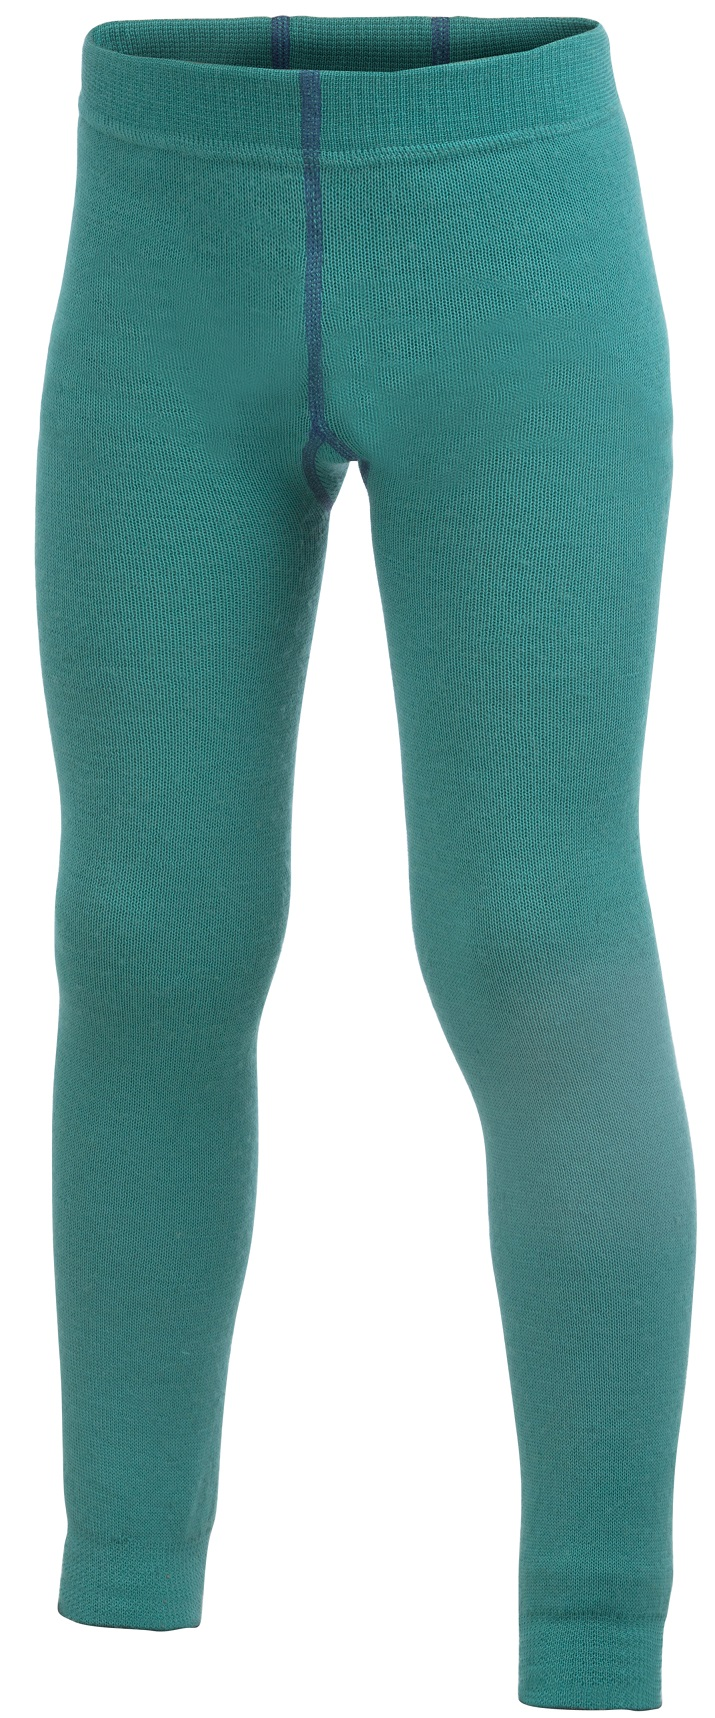 "Woolpower ""200 Kids Long Johns"" - turtle green"